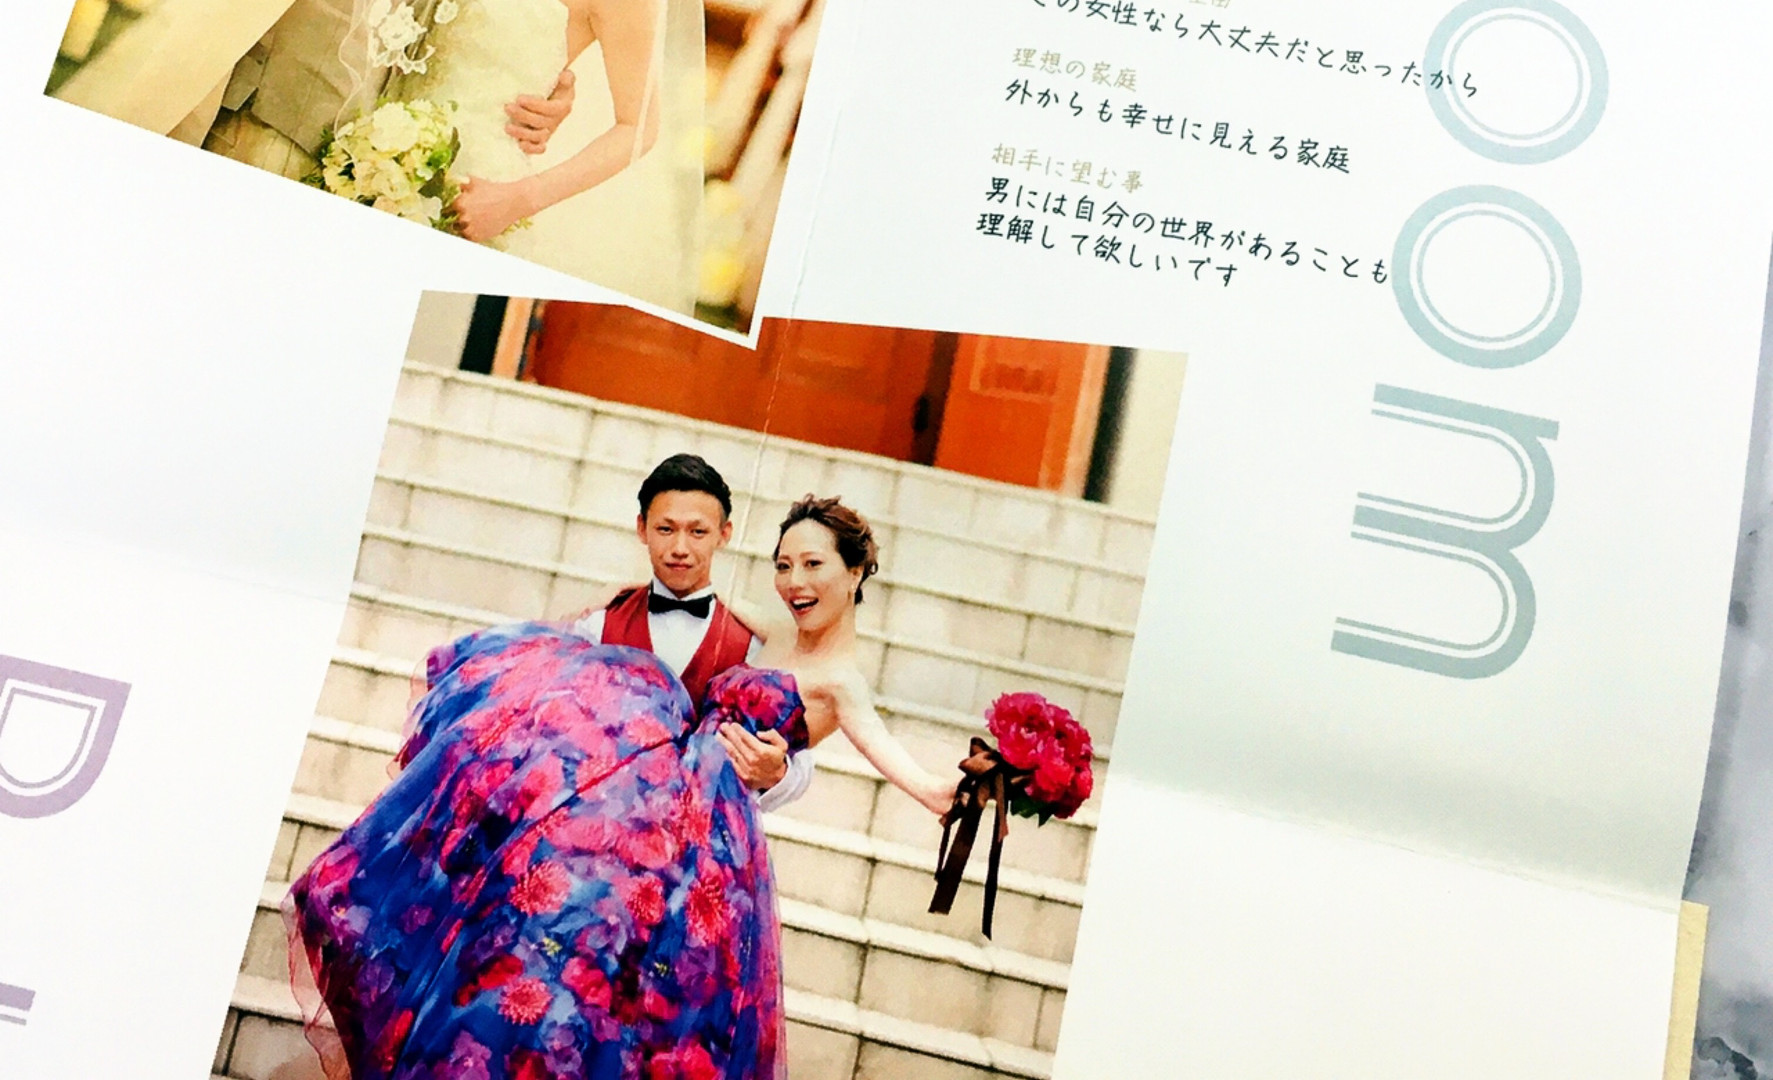 Just married デザイン7-A-5.jpg